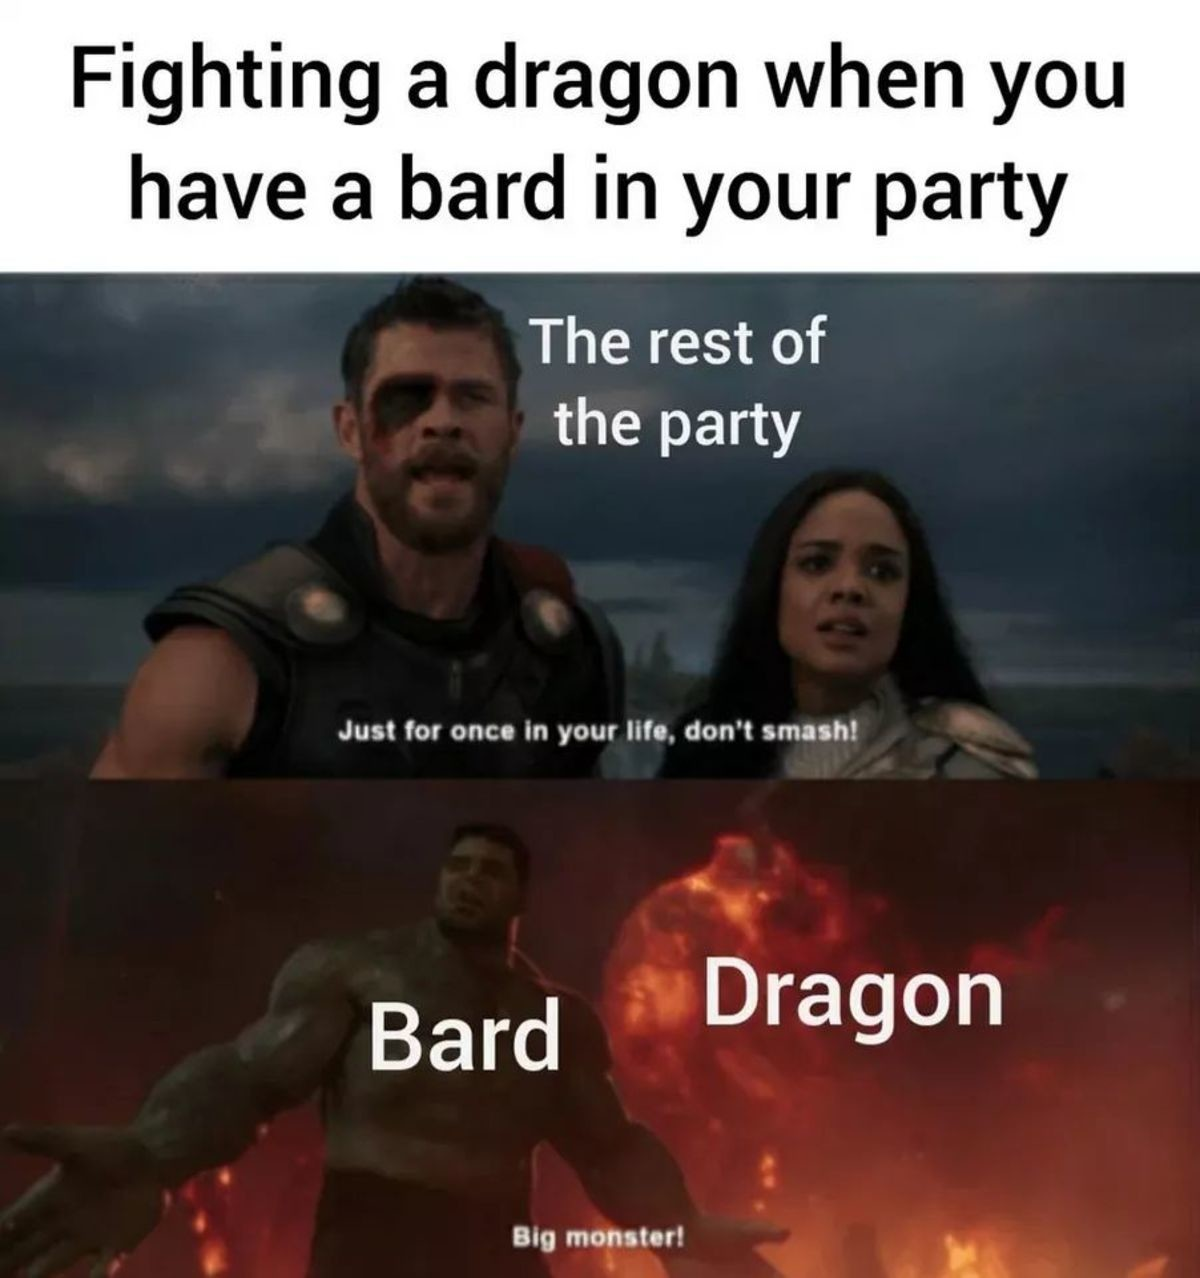 Smash the dragon. .. hehe the bard have sex with a dragon hehe